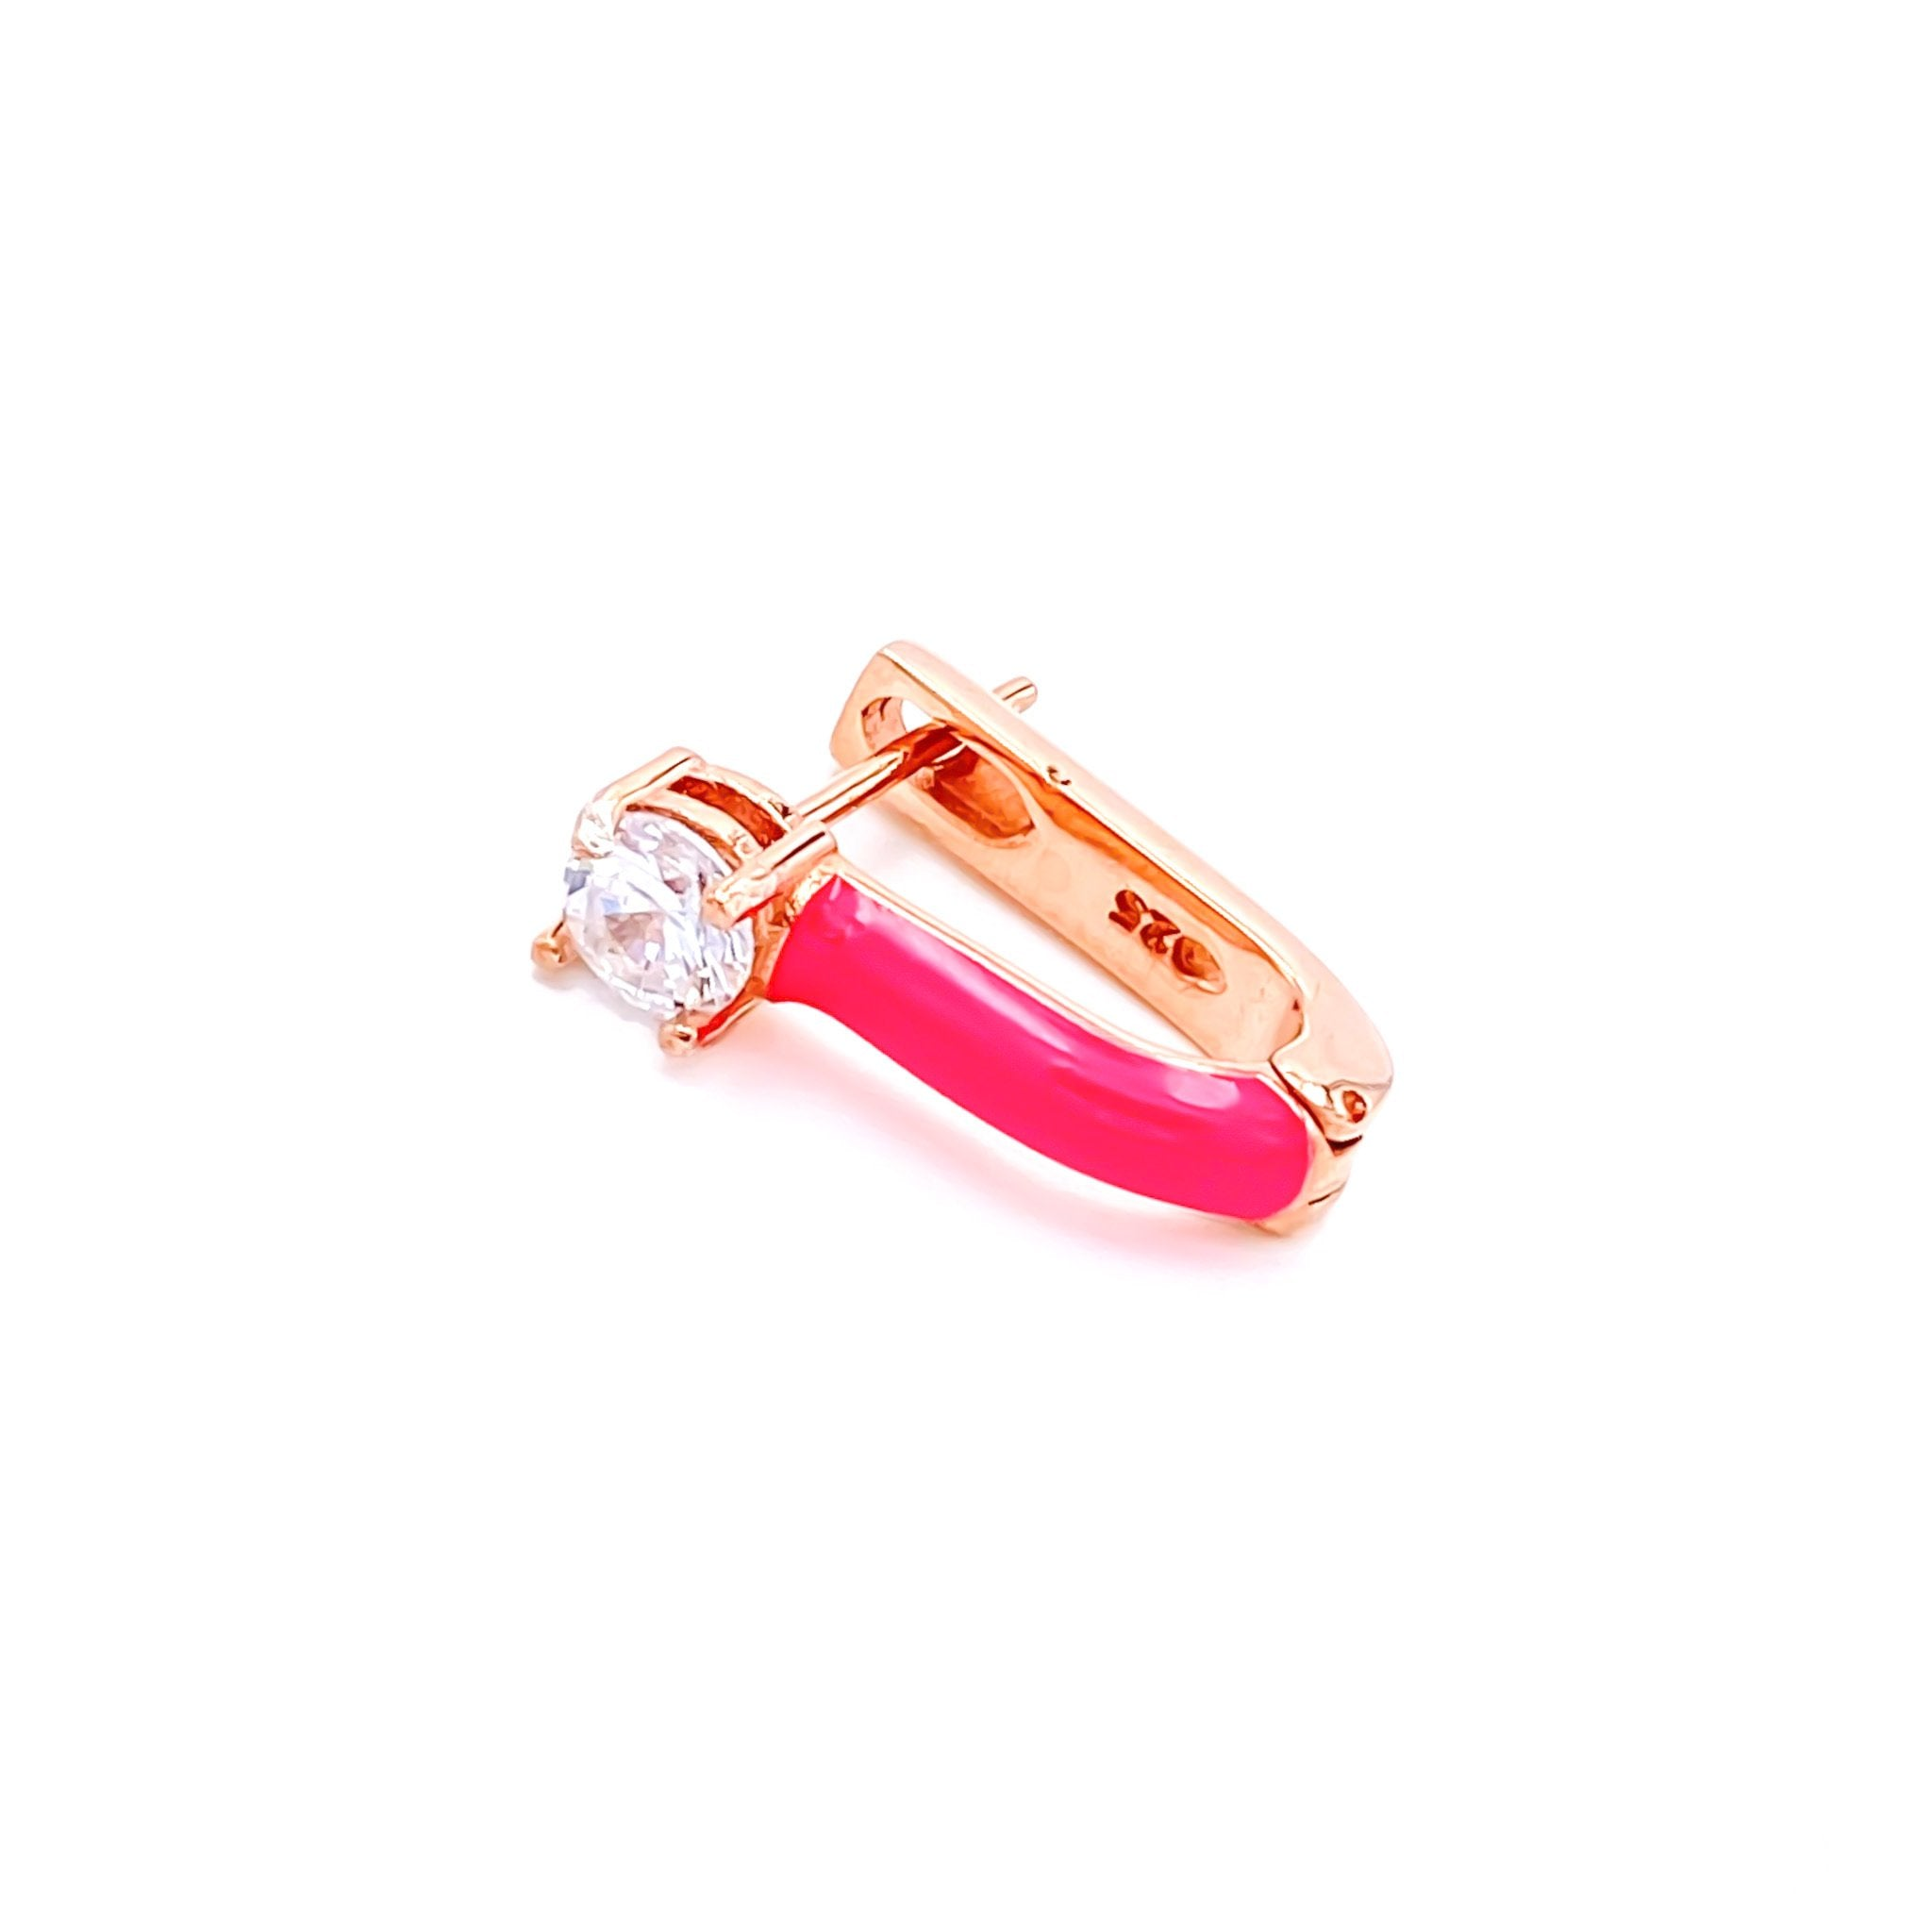 Neon Pink Solitaire Earring